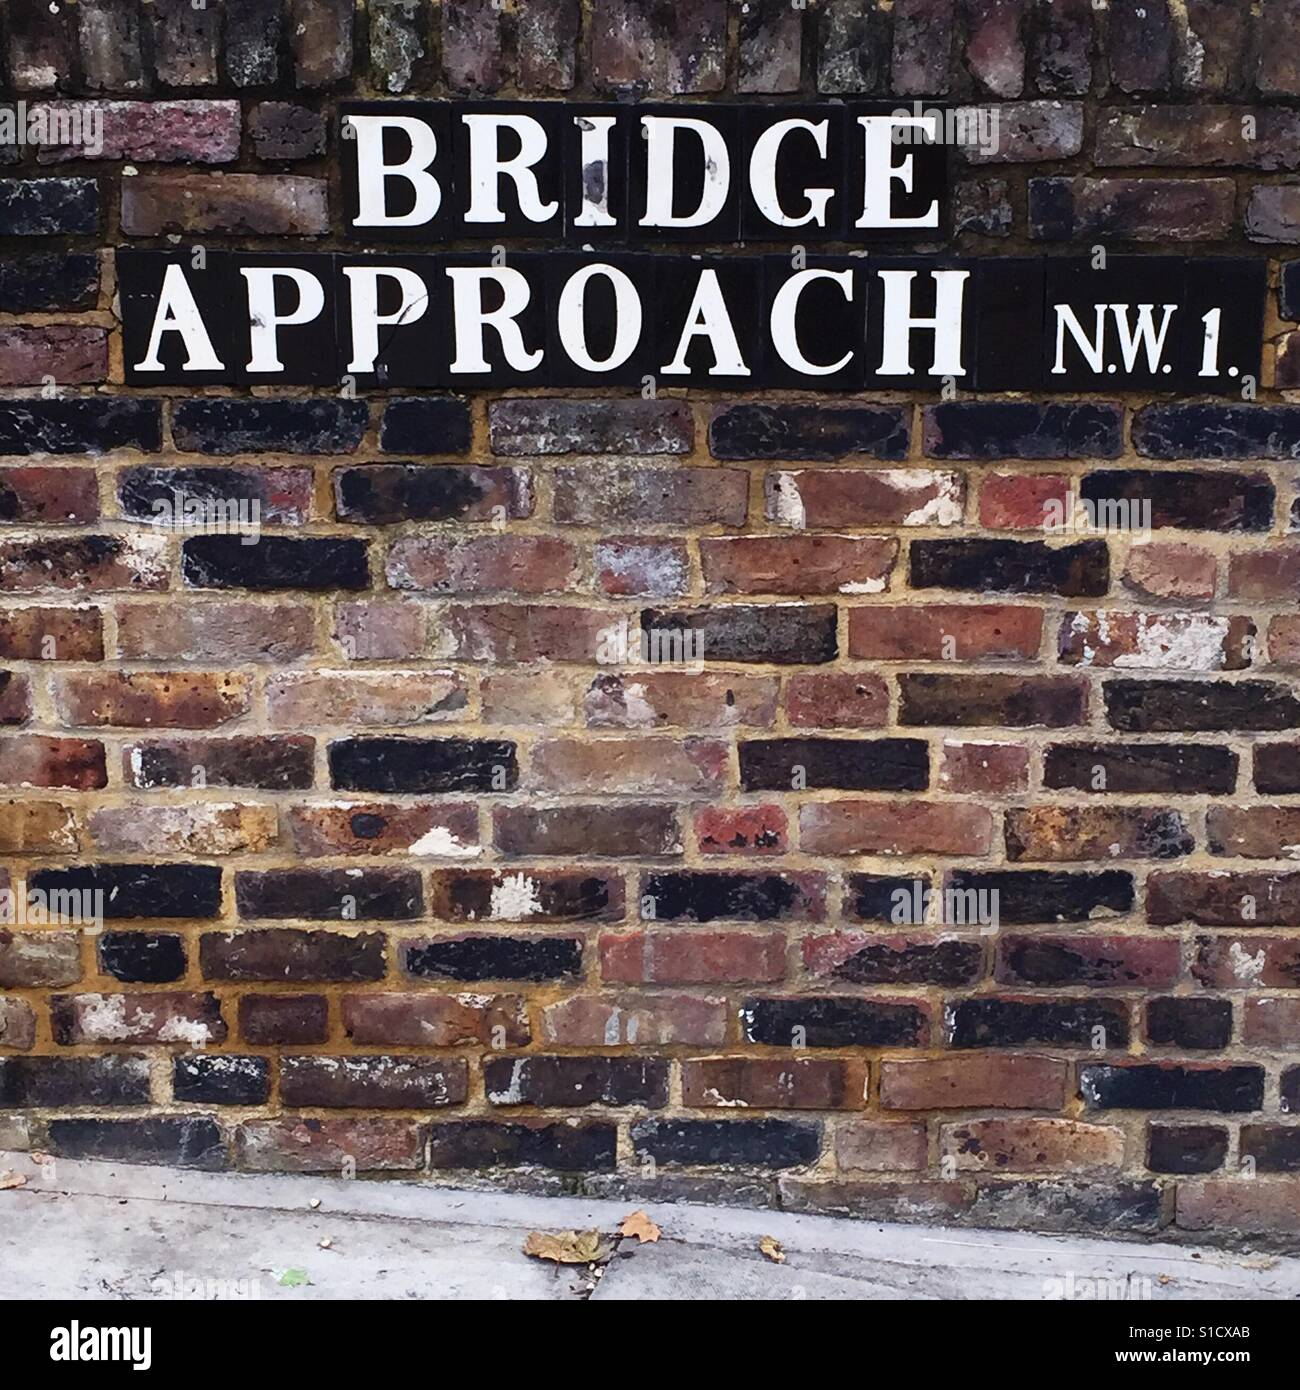 Bridge Approach NW1 - Stock Image